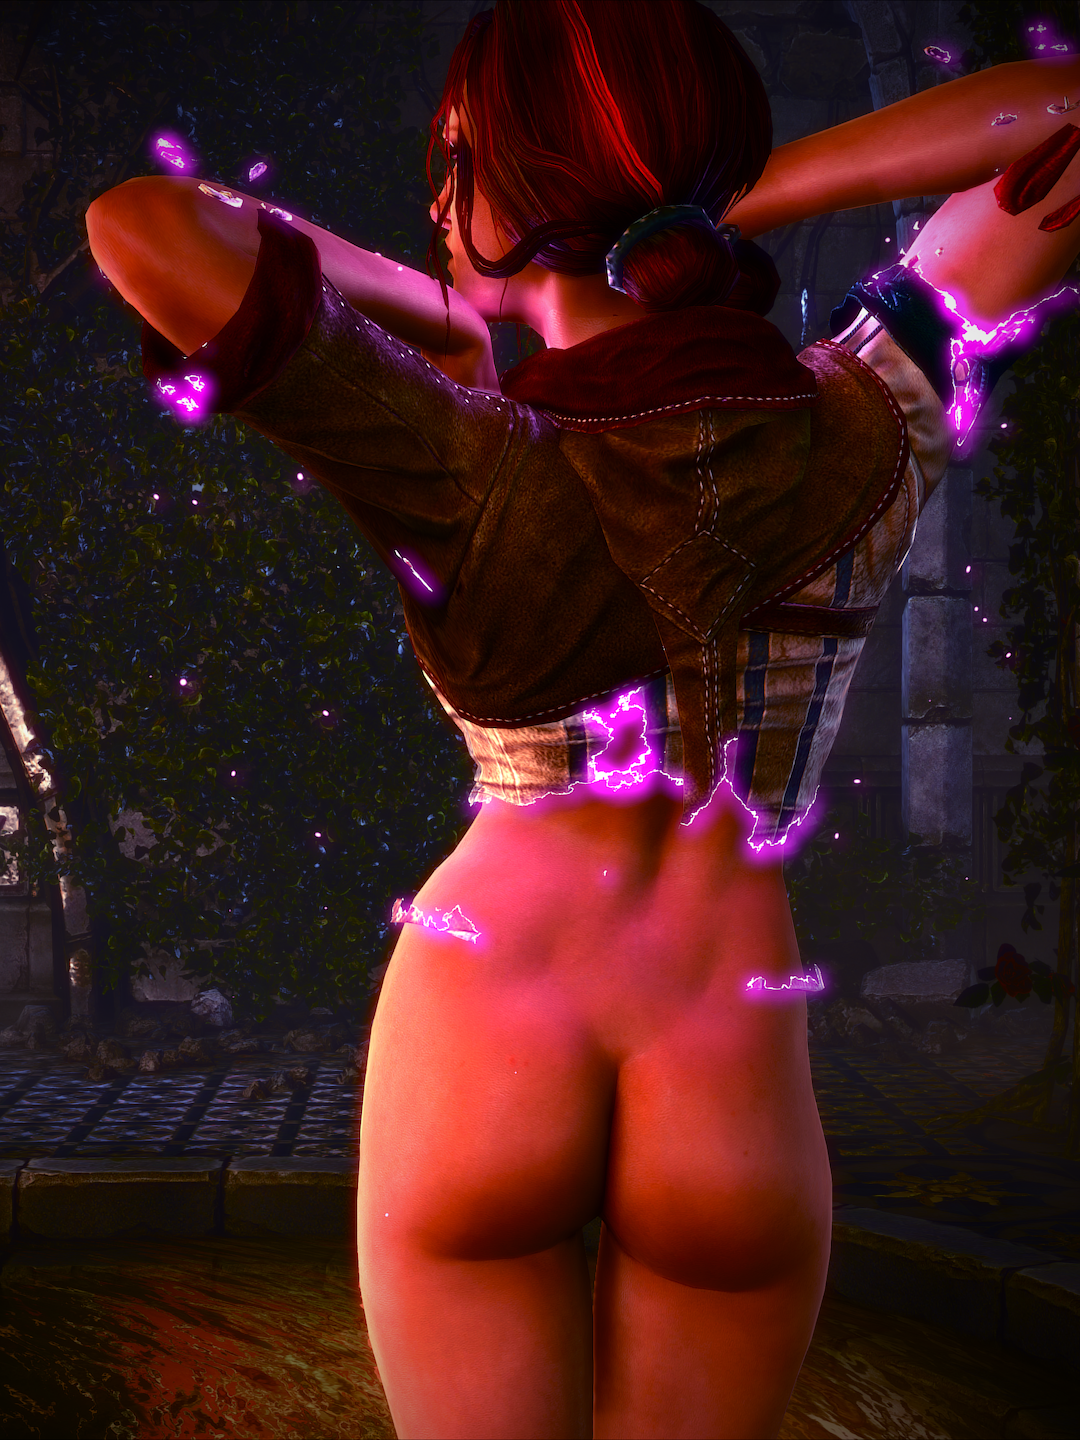 lovesexmagic.png - Witcher 2: Assassins of Kings, the